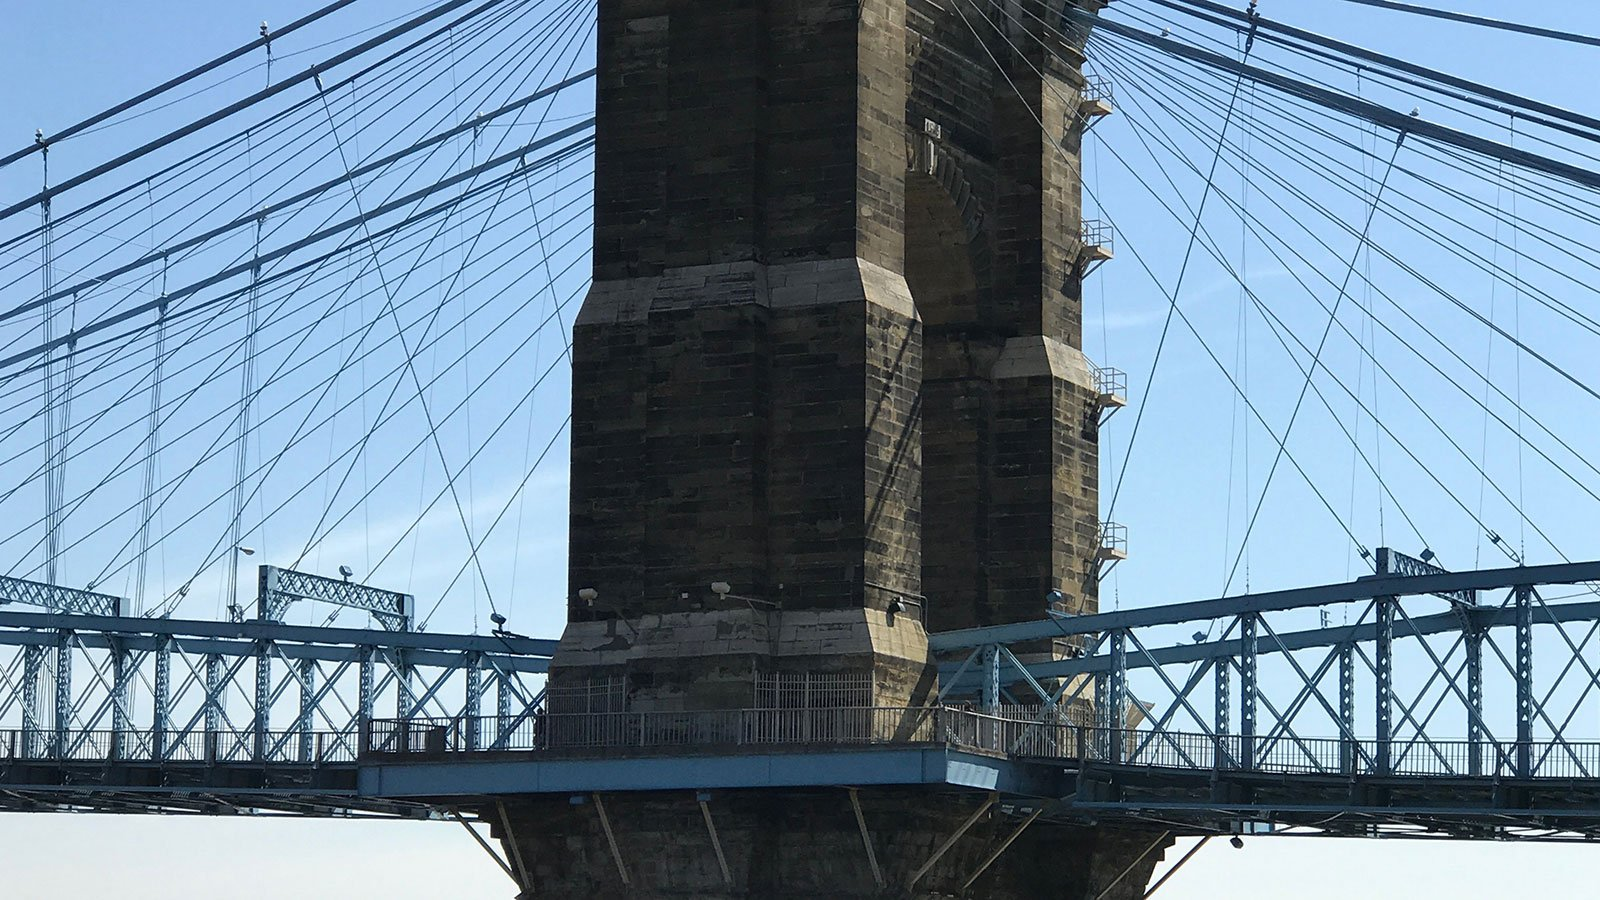 tower on the John A. Roebling Suspension Bridge